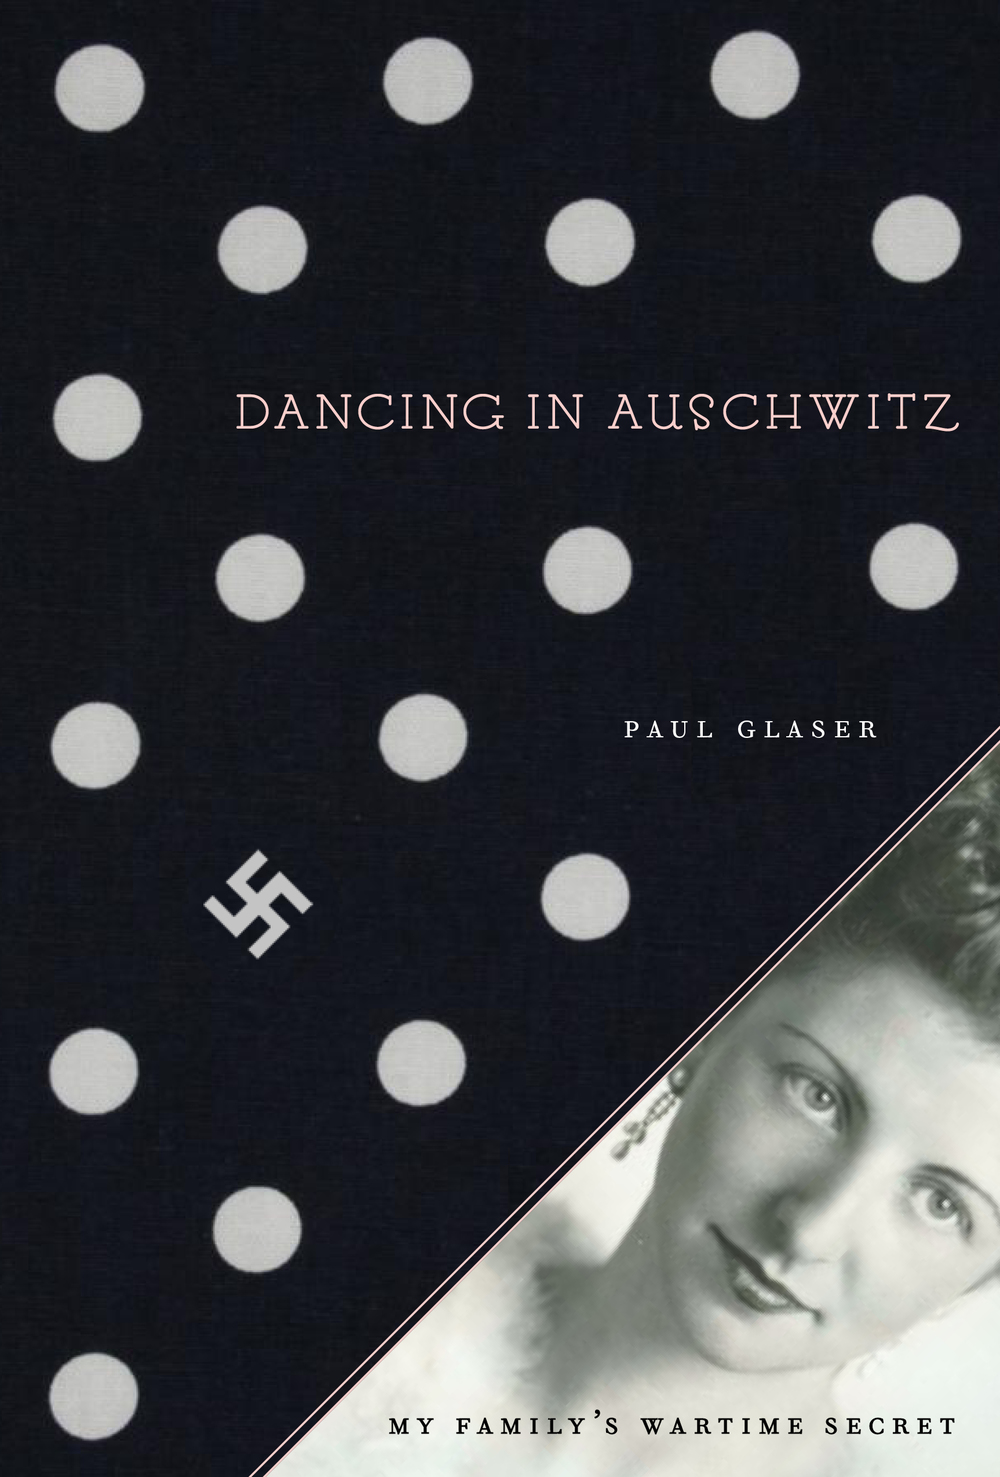 DANCING IN AUSCHWITZ